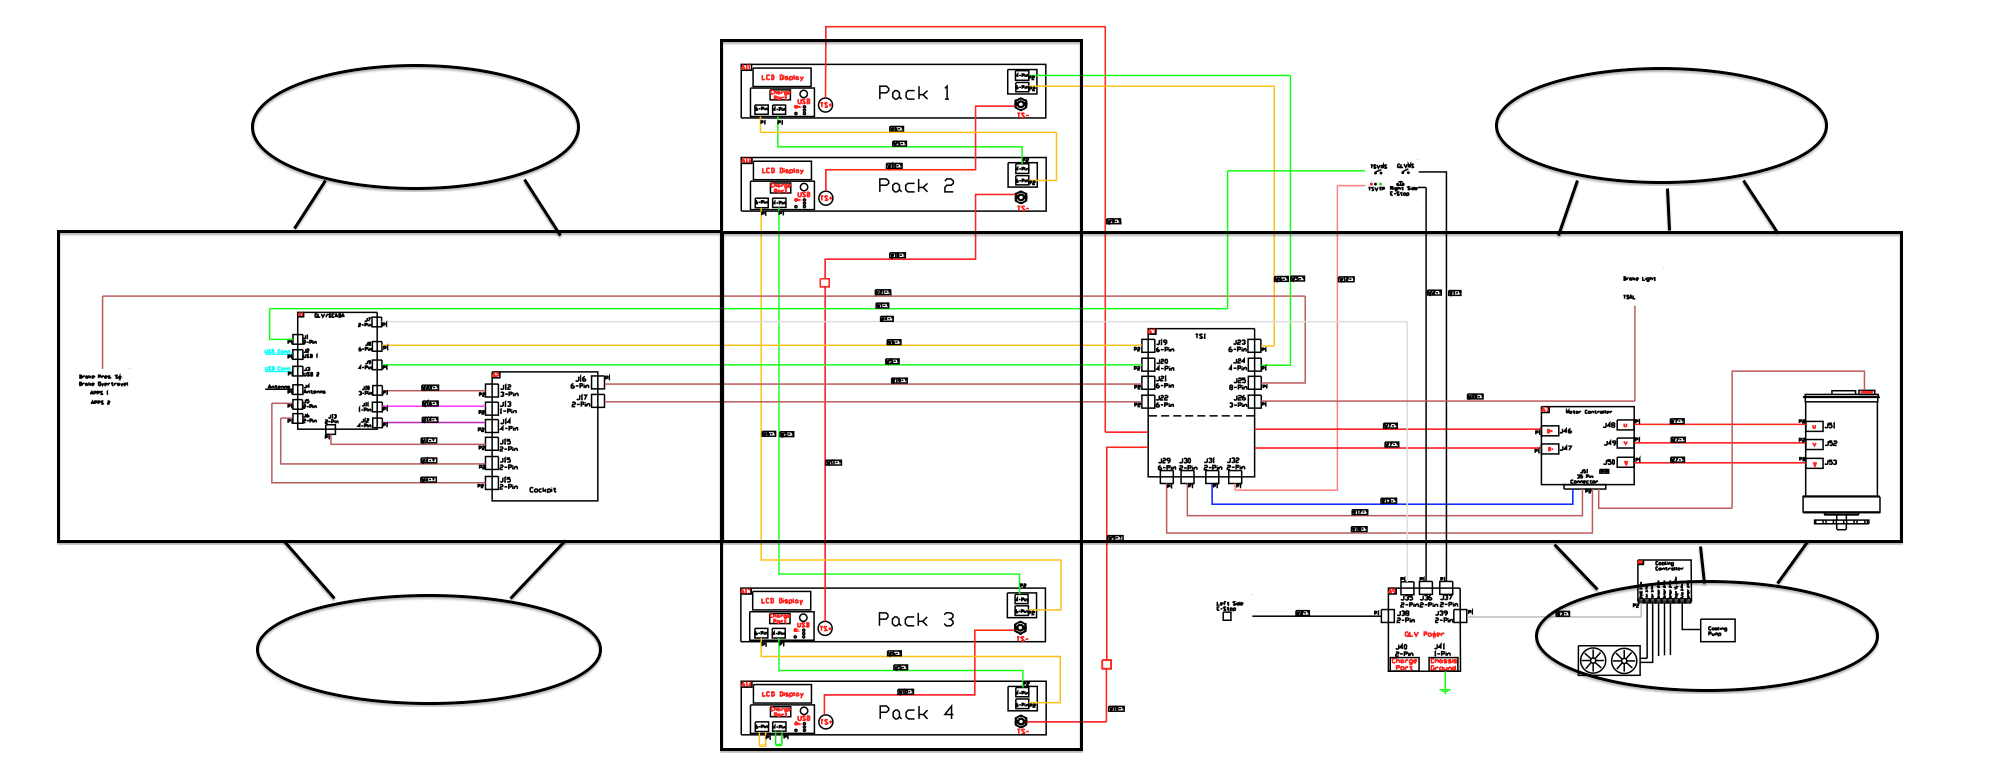 Esf 2 Fig 26wiring Diagram For Complete Sending And Receiving Set No 1 Click Detail